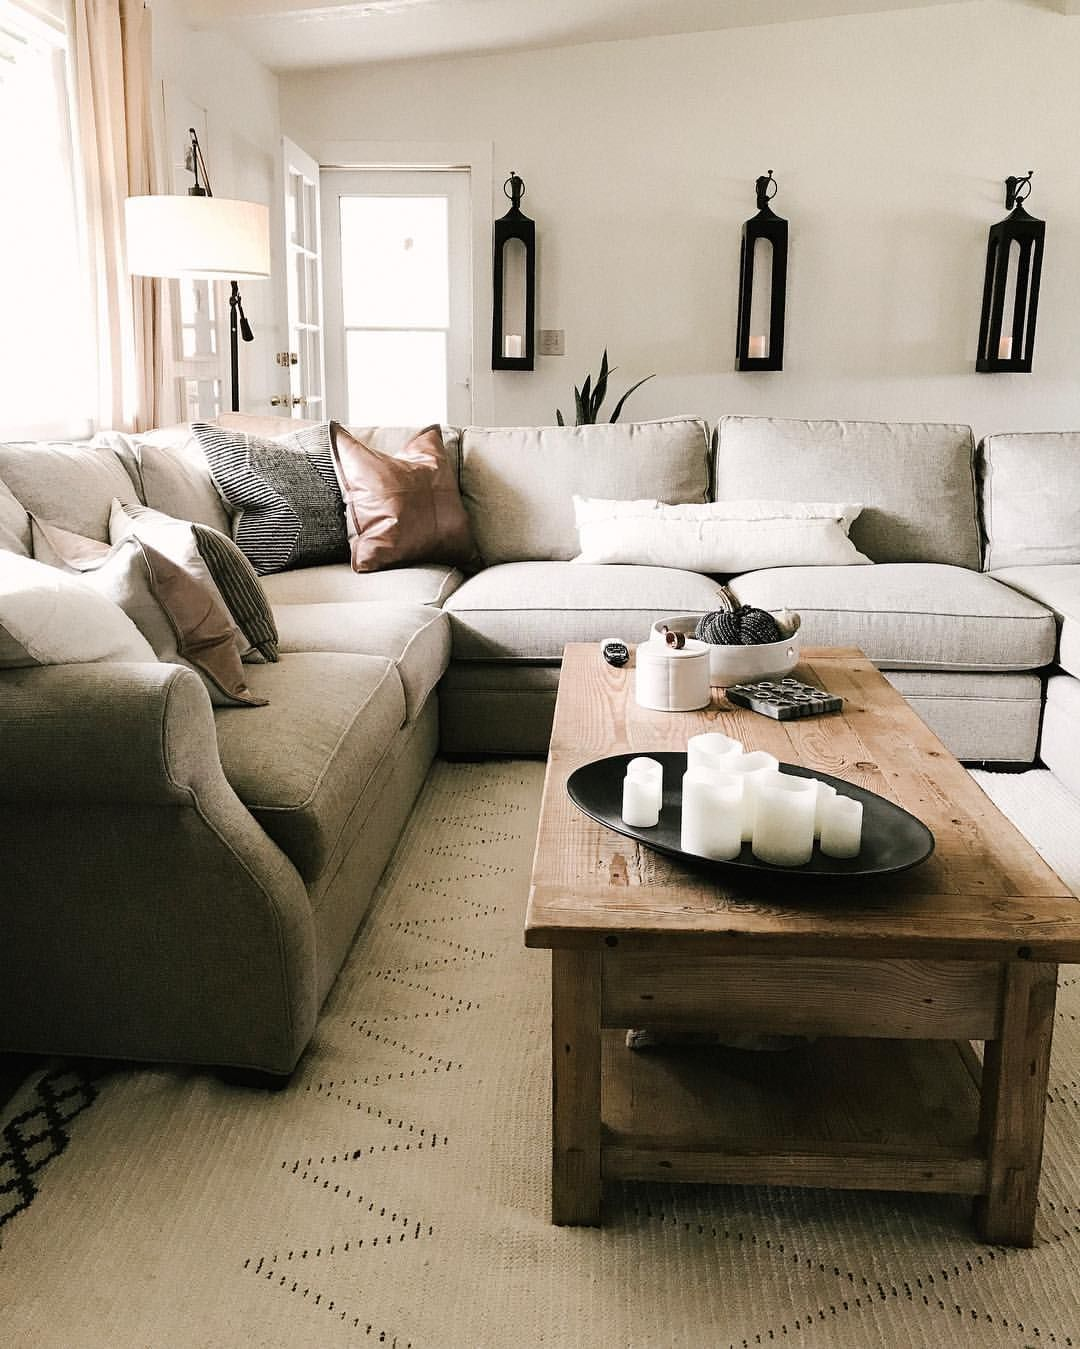 Reclaimed Wood Coffee Table Living Room Decor Coffee Table Styling Sectional Leather Pillow Living Room Pillows Living Room Throws Sectional Living Room Layout